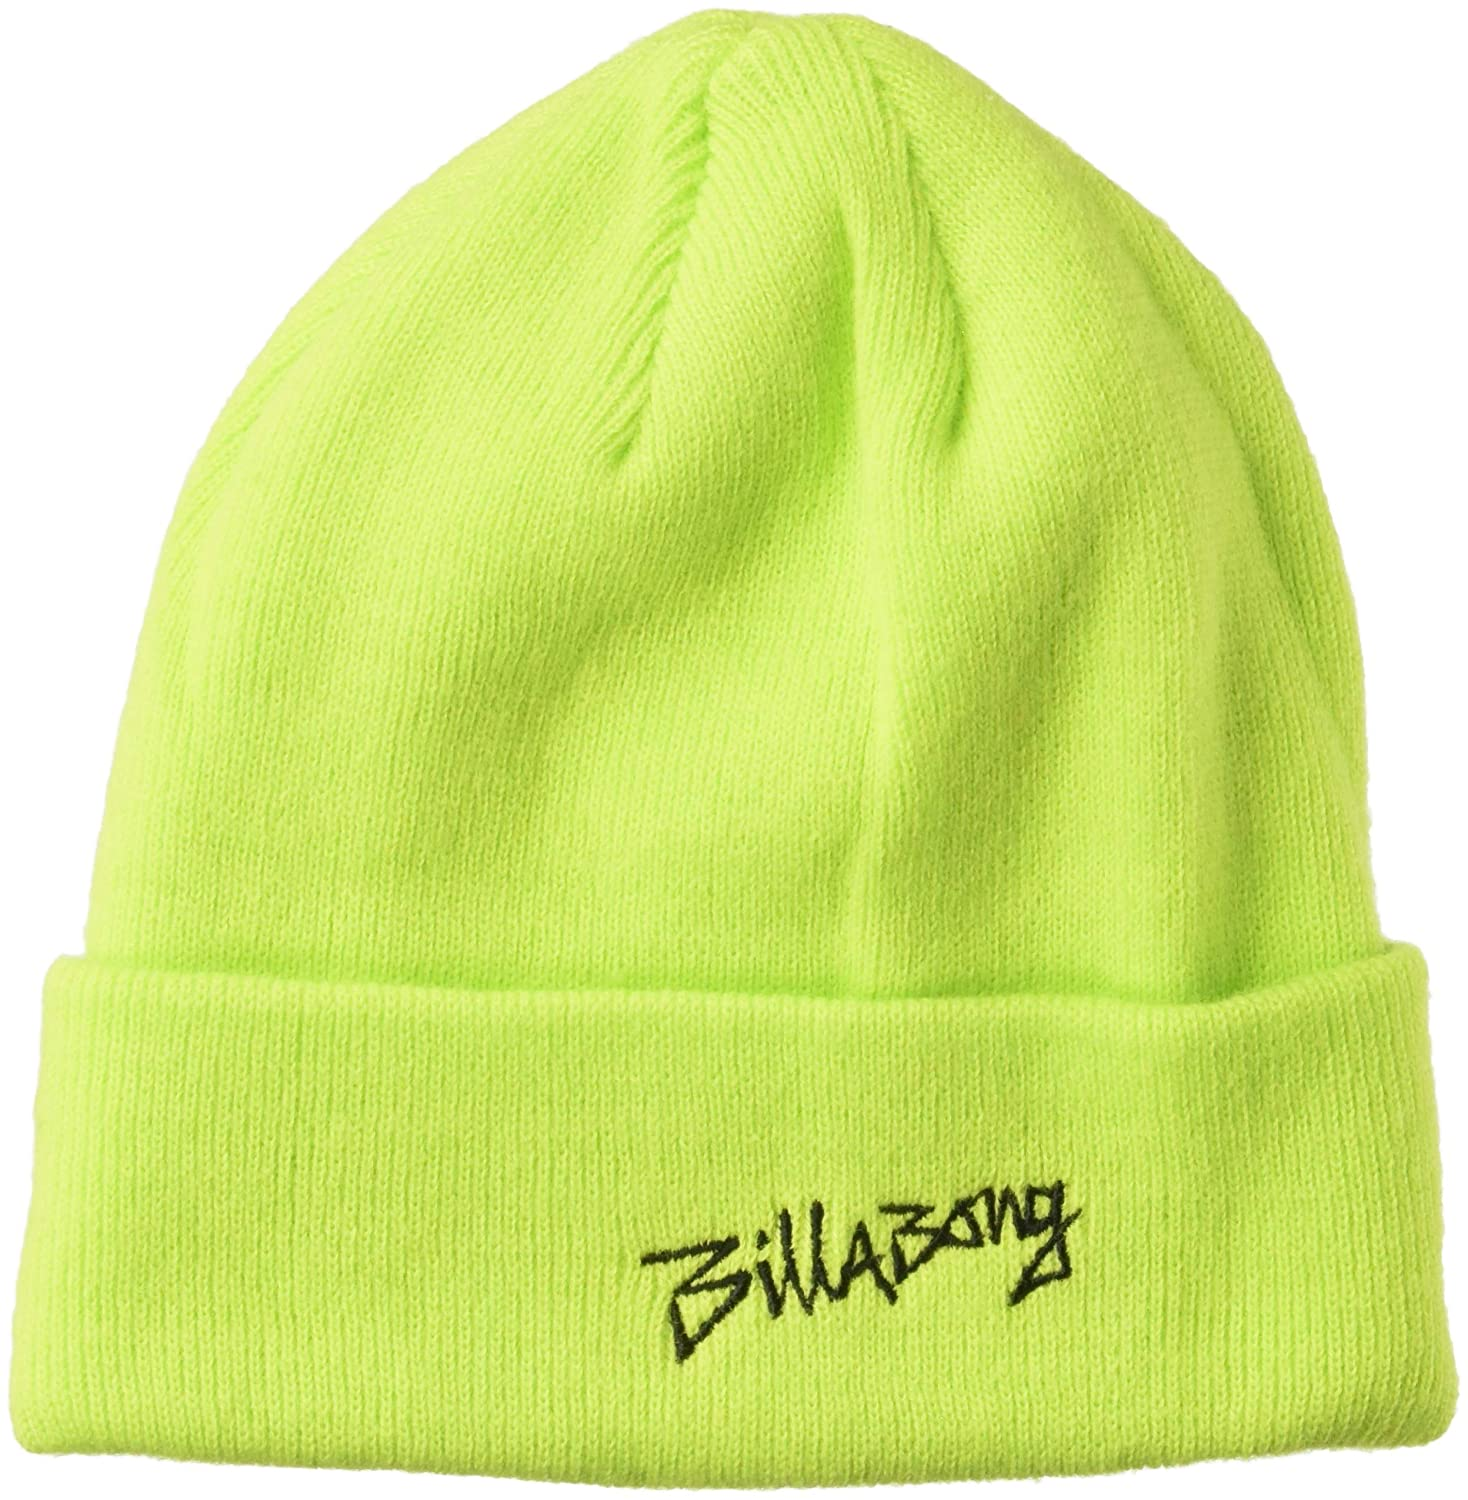 2bdbb2d1b36 Billabong Men s Eighty Six Beanie Alpine ONE MABNSBES